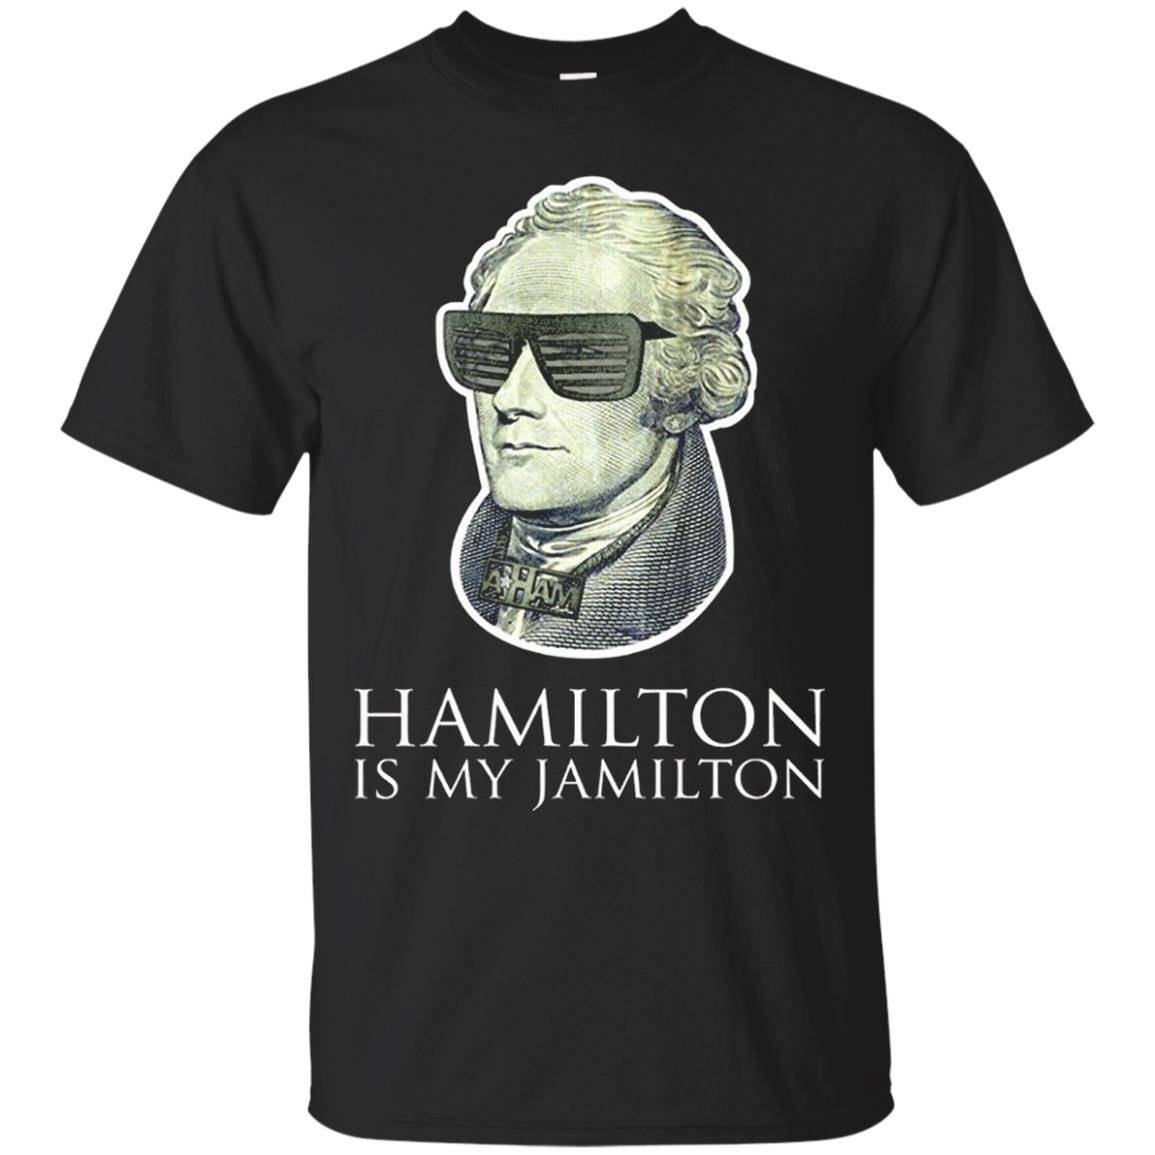 Hamilton is my Jamilton funny shirt – T-Shirt